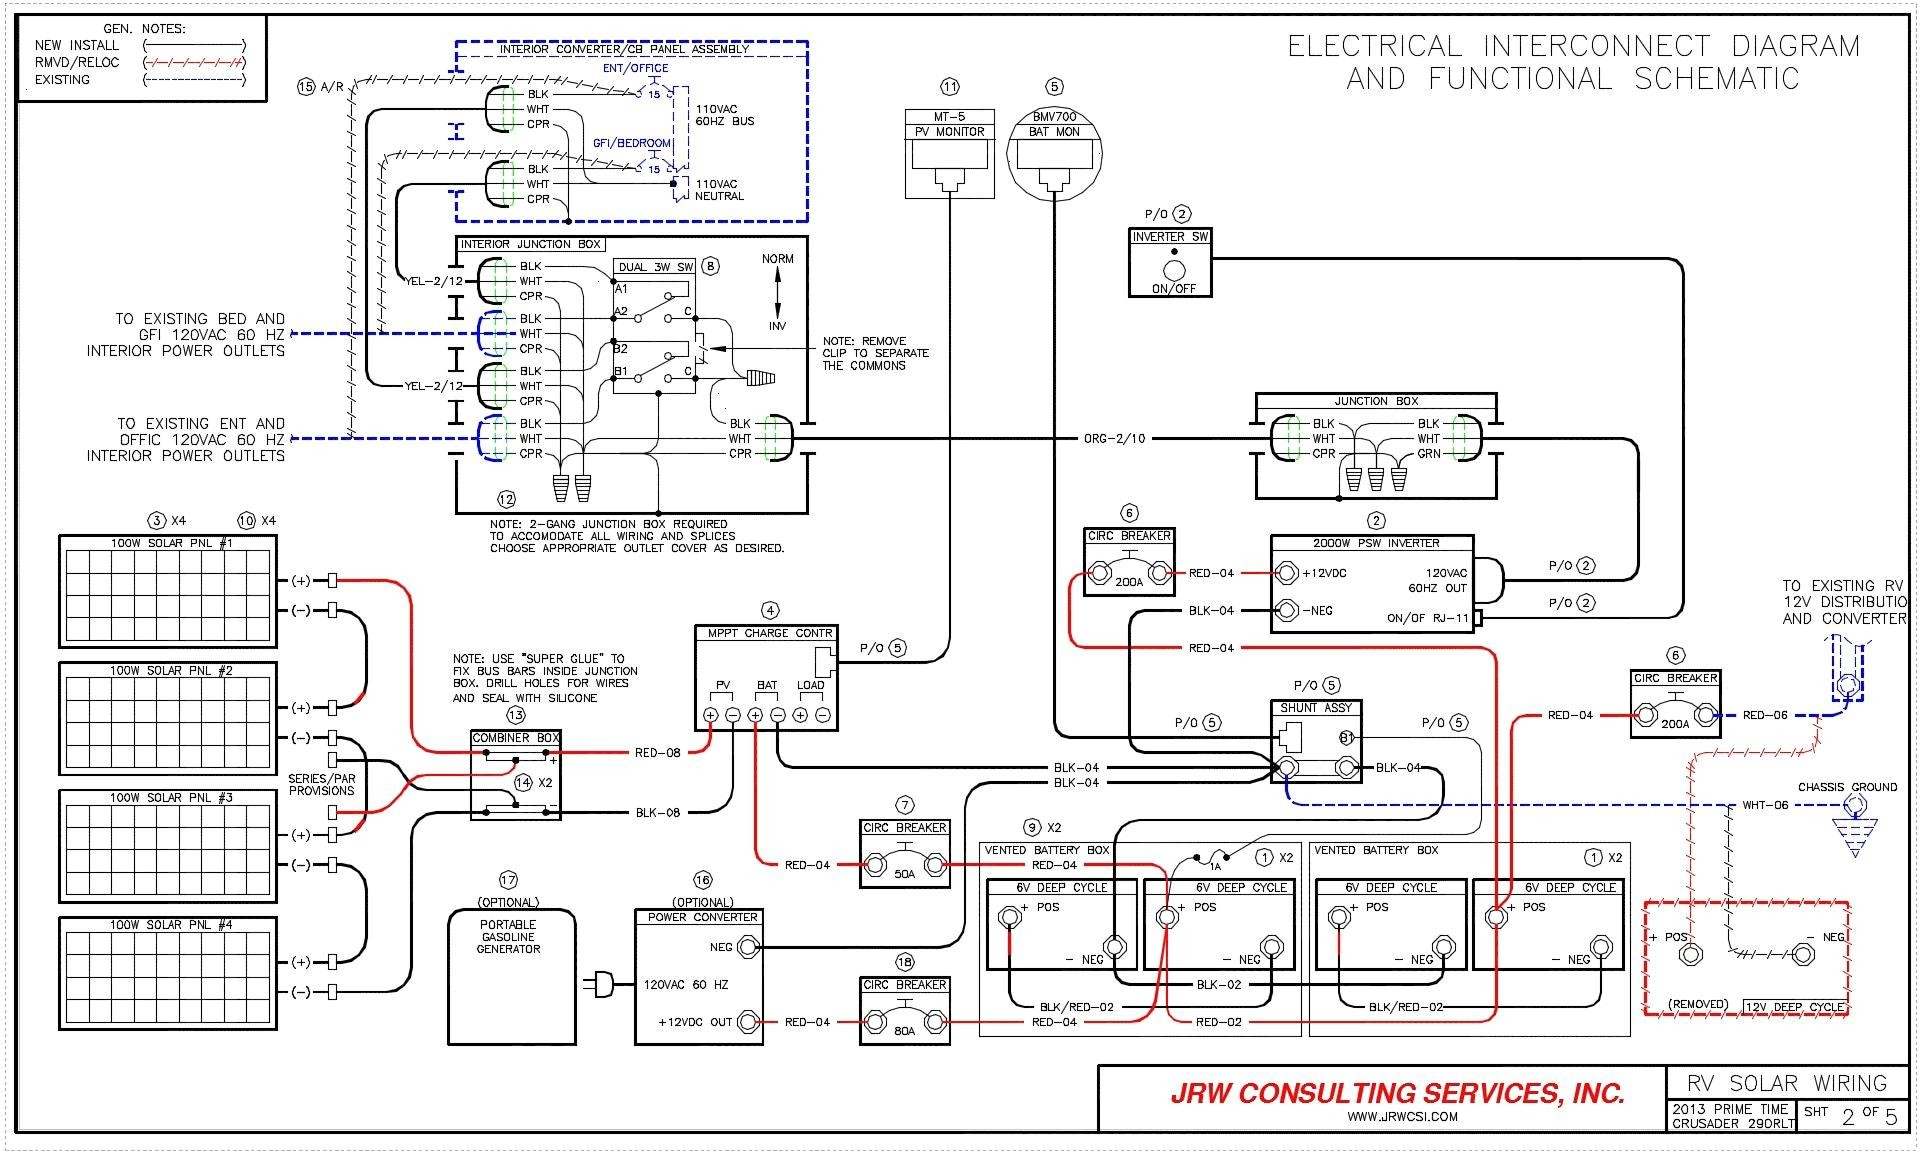 Onan Rv Generator Wiring Diagram | Online Wiring Diagram One Line Wiring Diagrams Rv on circuit diagram, rv pump diagram, rv wiring parts, rv wiring book, rv construction diagram, hsi diagram, rv electrical wiring, rv ac diagram, 7 rv plug diagram, rv battery diagram, rv electrical diagram, rv switch diagram, rv furnace diagram, rv inverter diagram, rv wiring system, rv wiring problemsfrom, rv thermostat diagram, rv antenna diagram, rv wiring layout, rv air conditioning diagram,